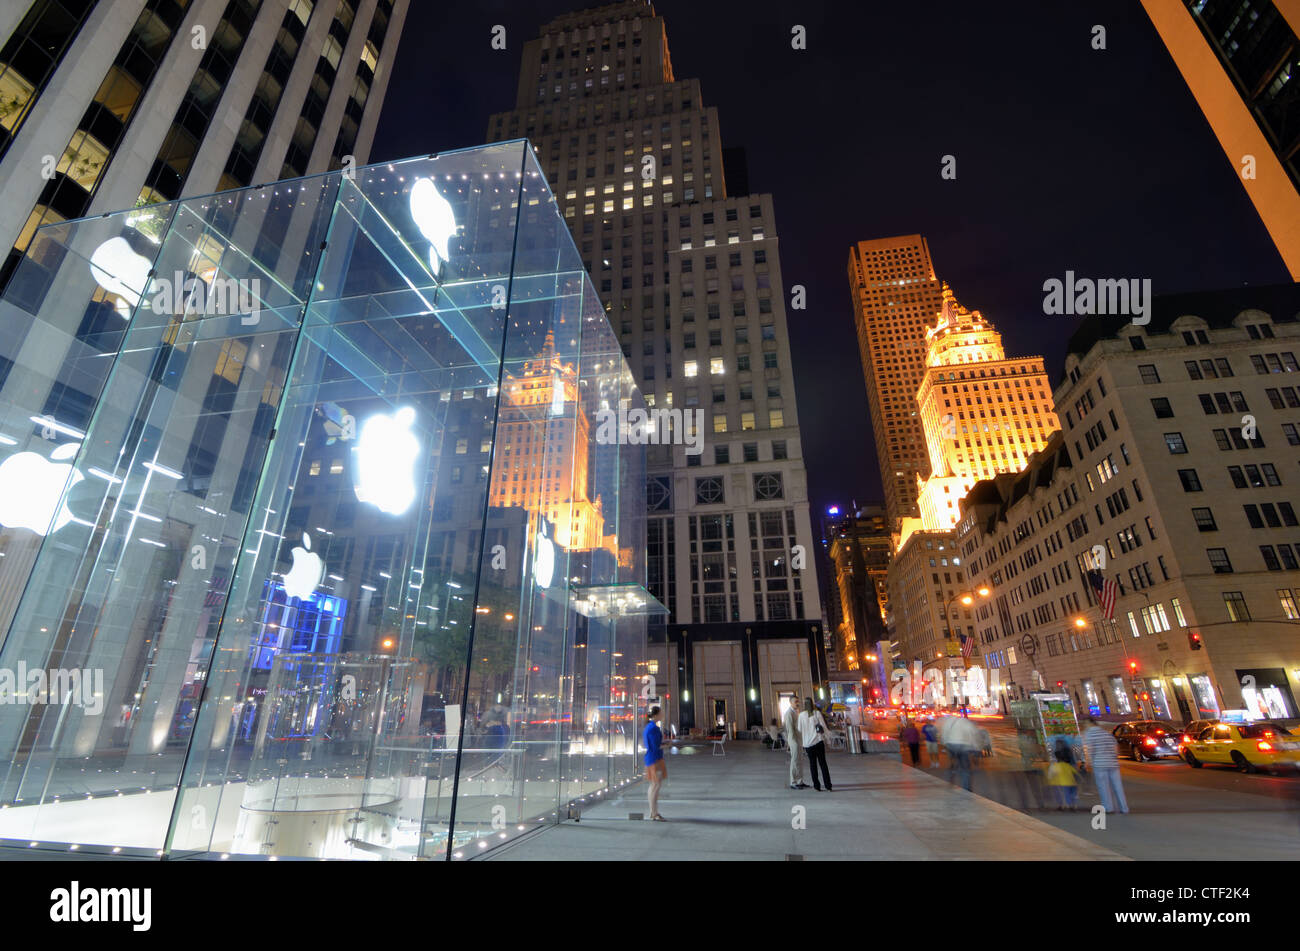 Apple Flagship Store along 5th Avenue in New York City. - Stock Image